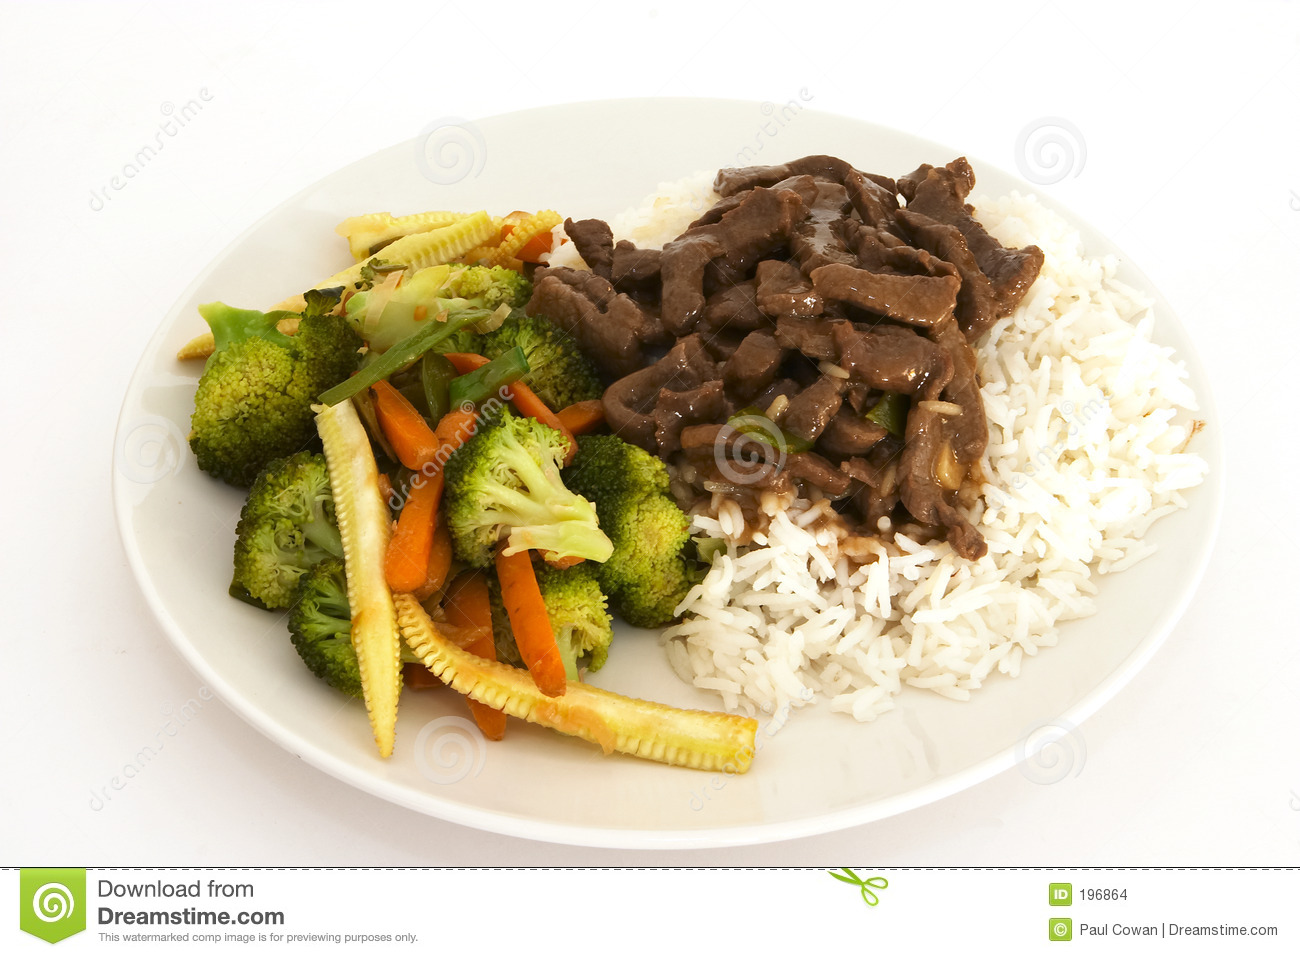 Beef and veg stir-fry